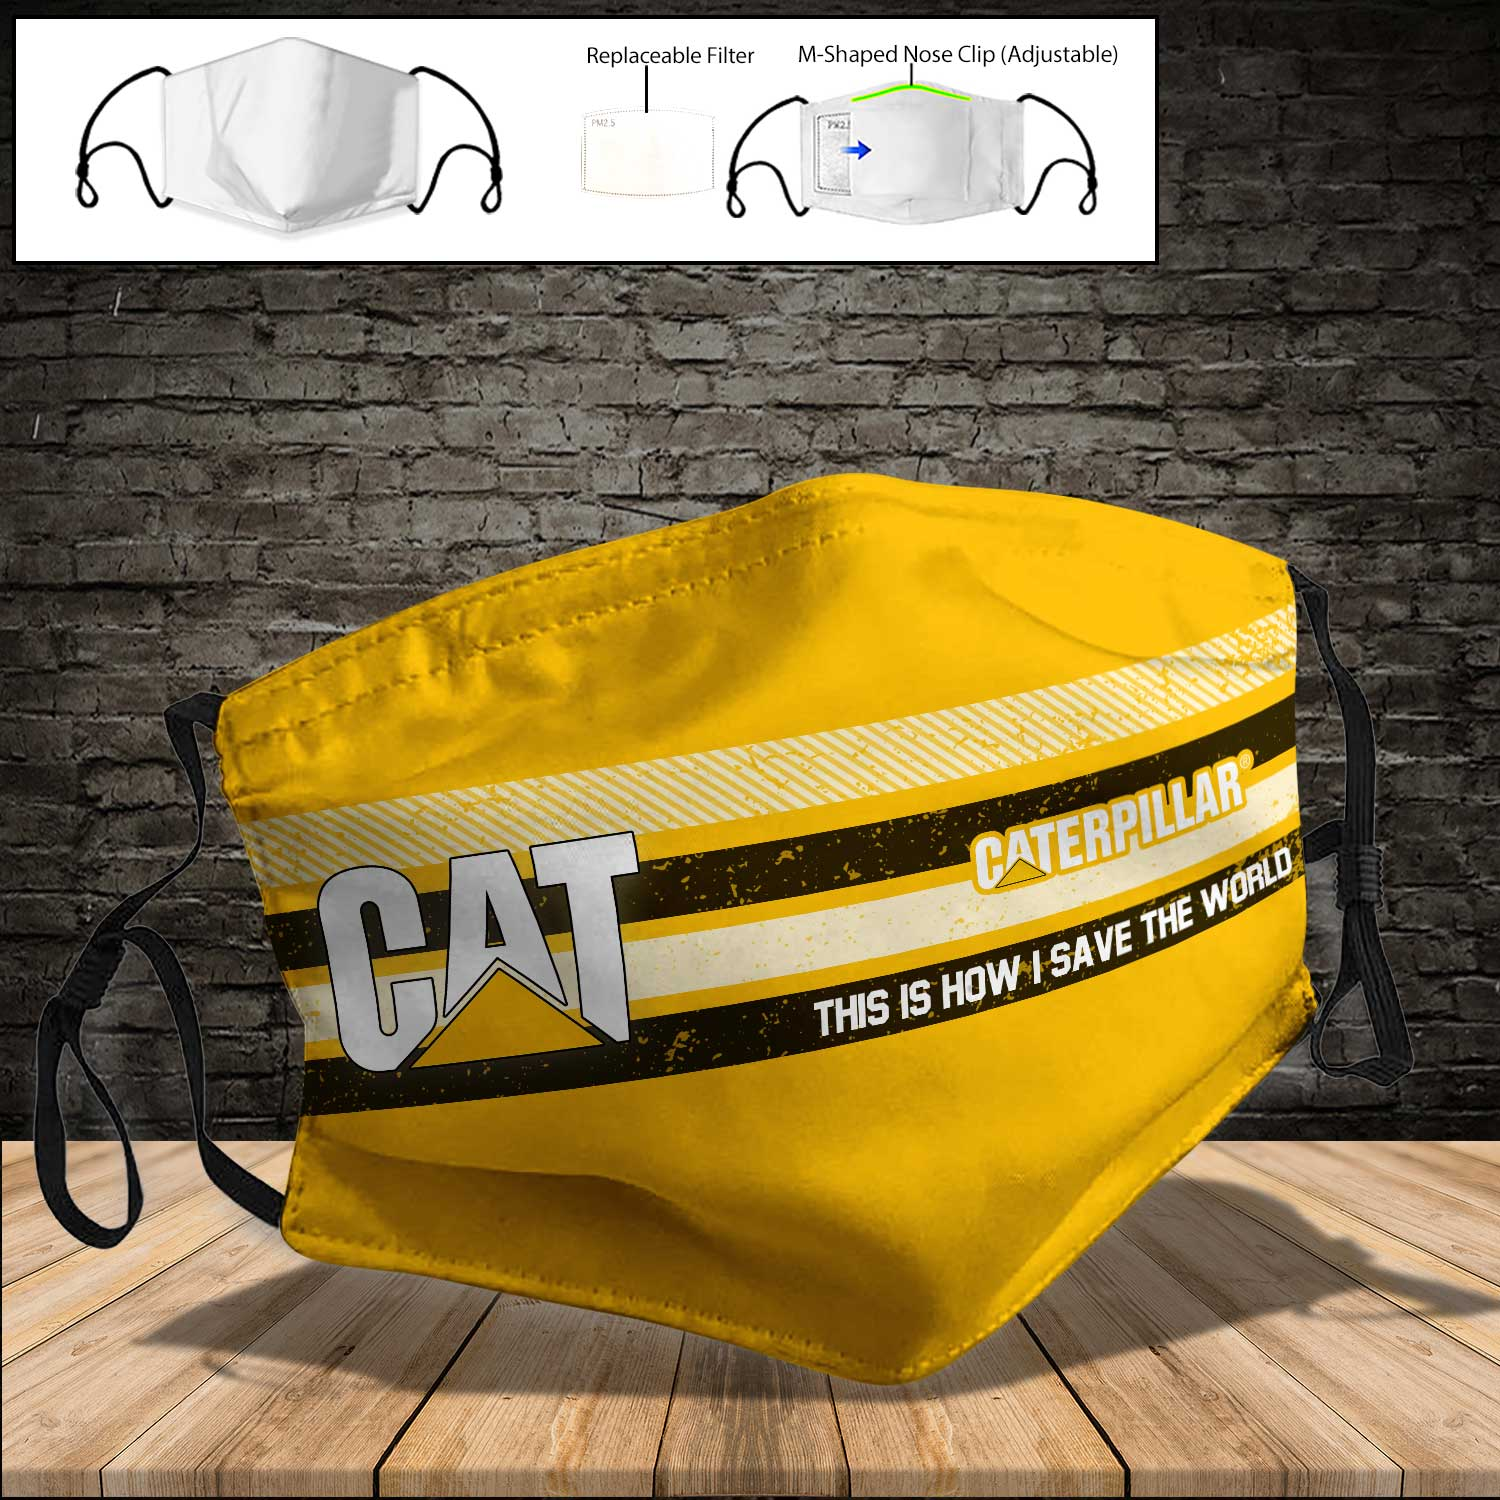 Caterpillar inc this is how i save the world full printing face mask 4